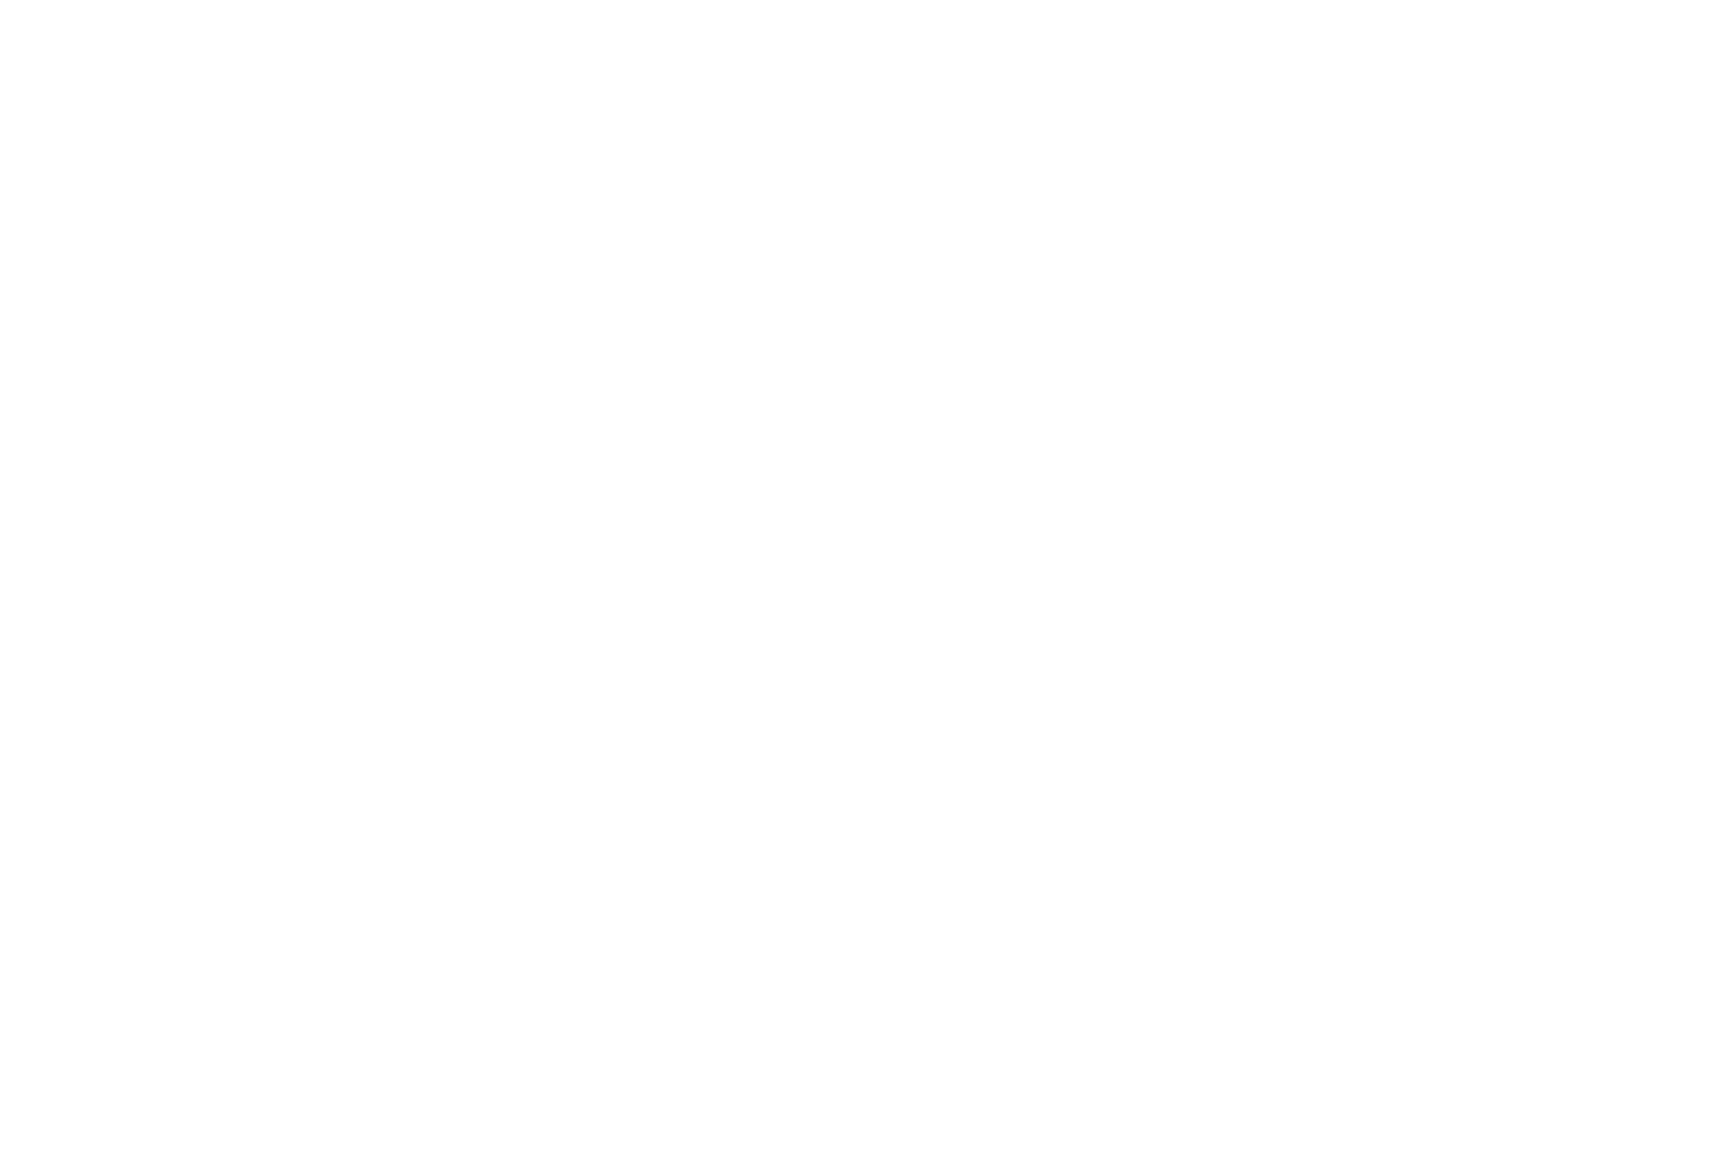 2018 Best Actor Award - Franklin County International Film Festival - Tom Kearney.png